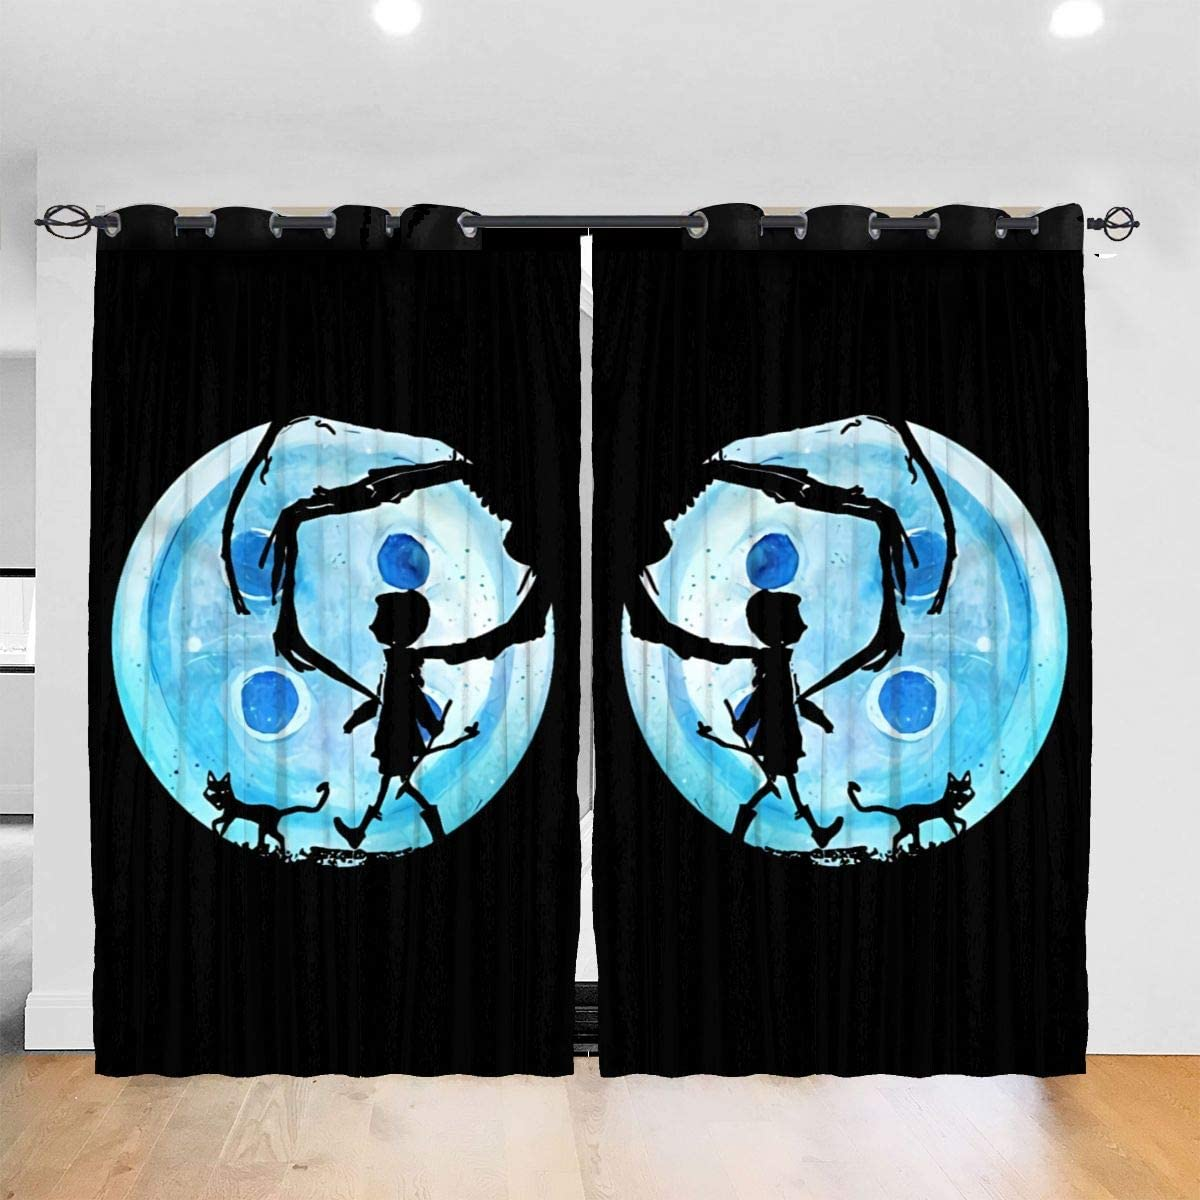 Hidreama Coraline Blue Full Moon Nightmare Cat Bedroom Blackout Curtains Room Darkening Drapes Top Insulation Compartment Window Curtains for Living Room Kitchen Room 2 Panels, 52×84 Inch, Sage